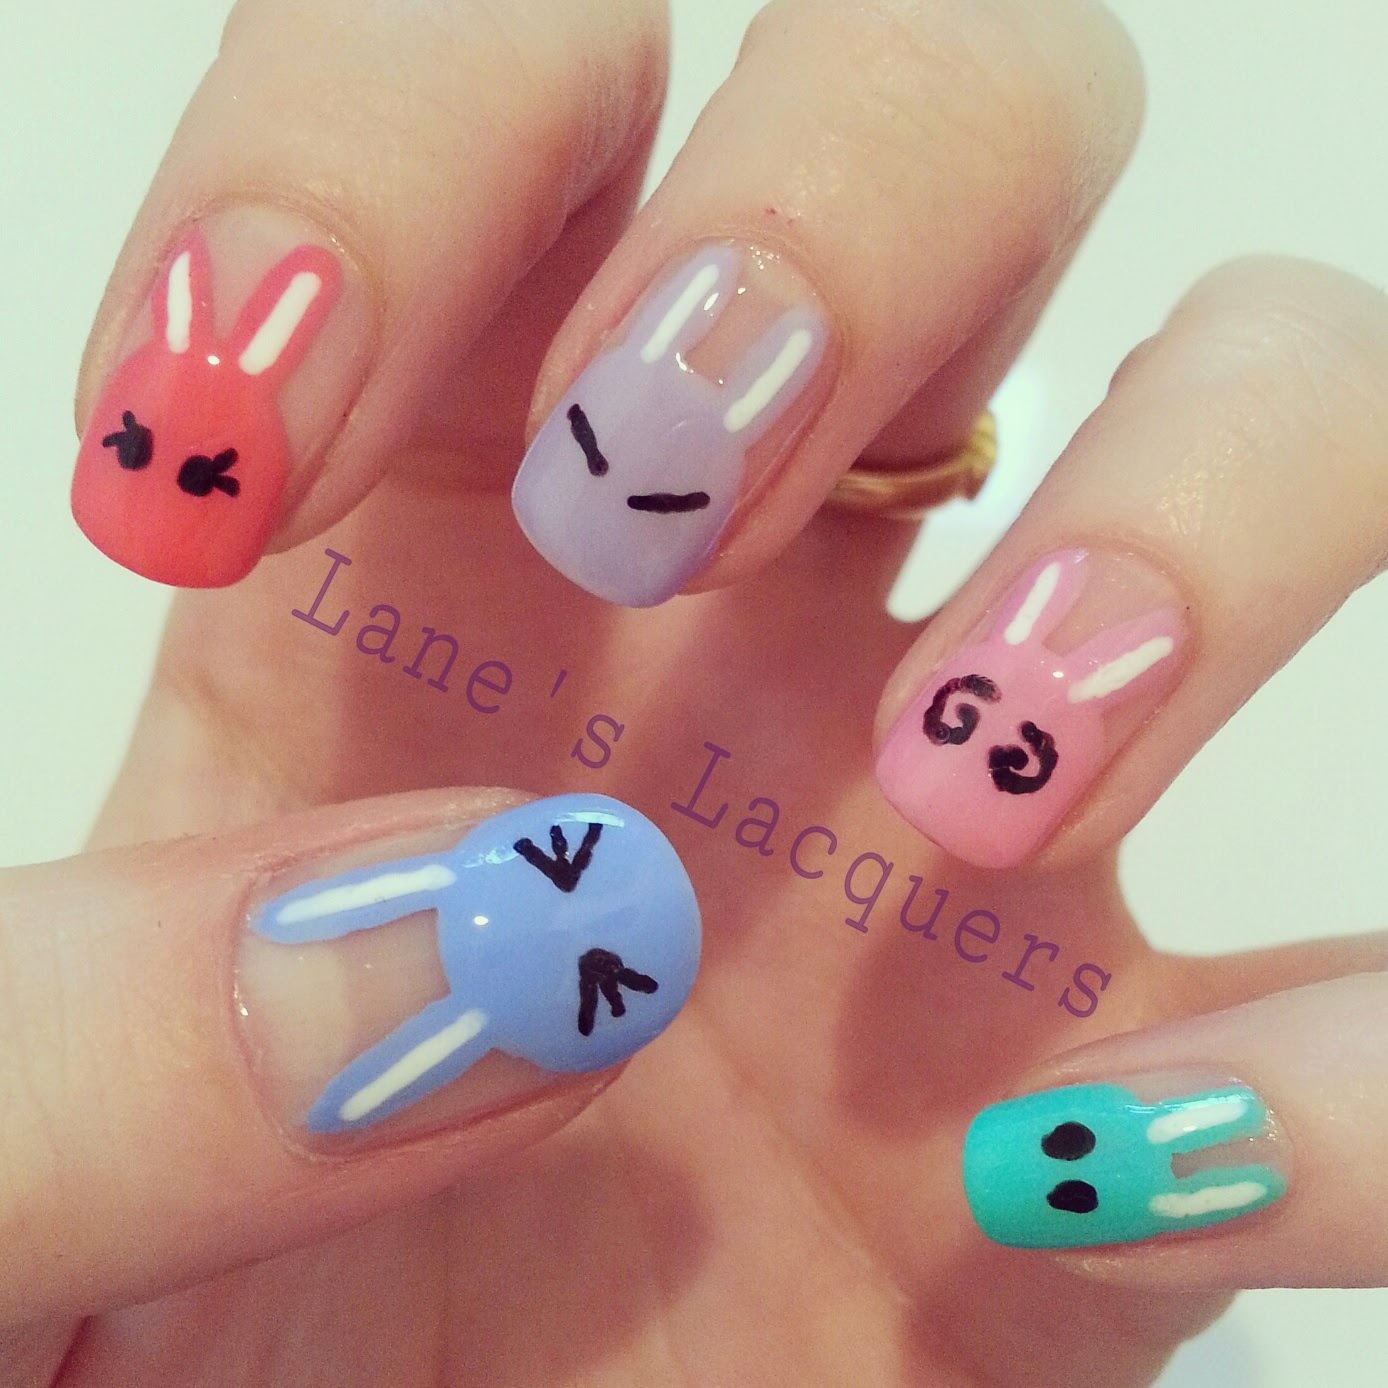 Adorable Nail Art: Lane's Lacquers: Fingerfood Theme Buffet: For Scarlett